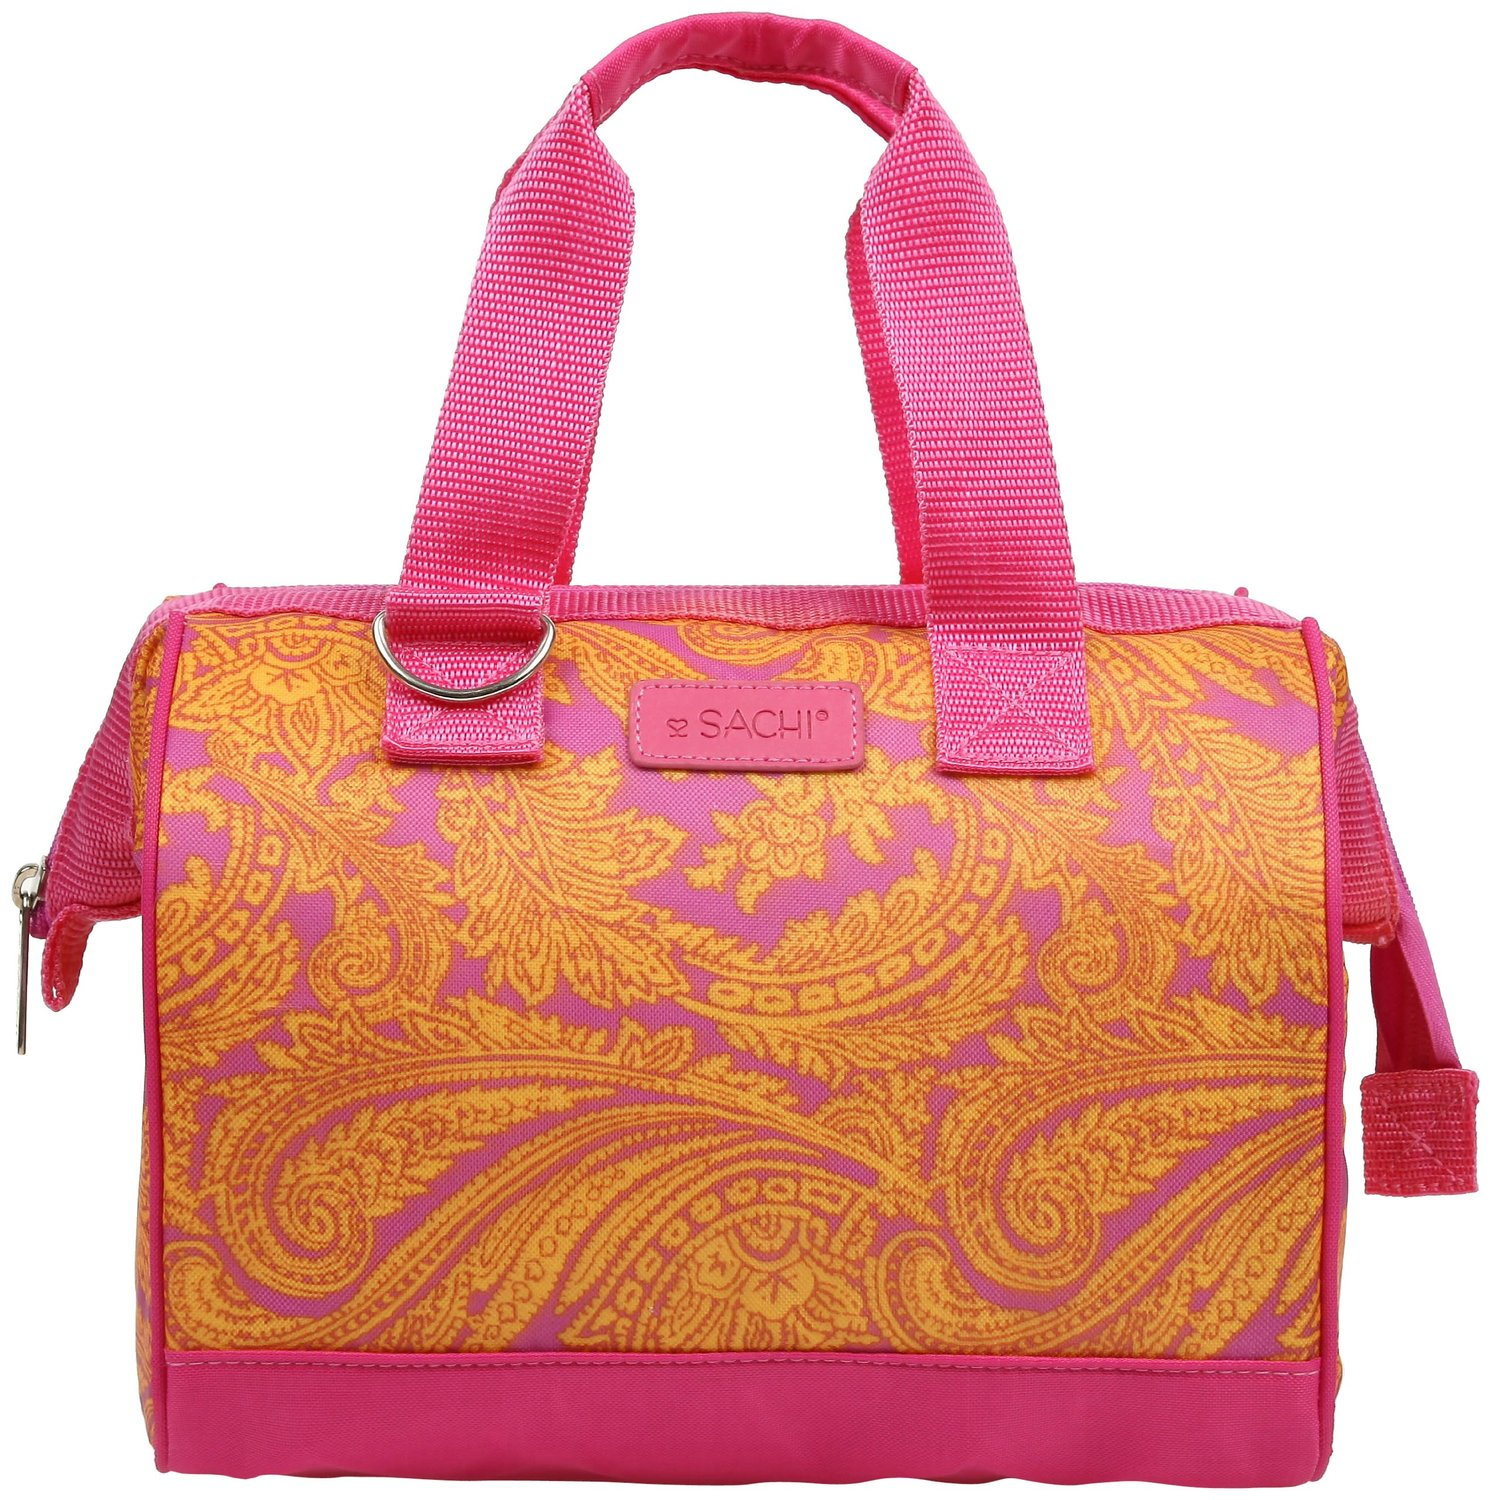 Sachi pink insulated fashion lunch tote 74